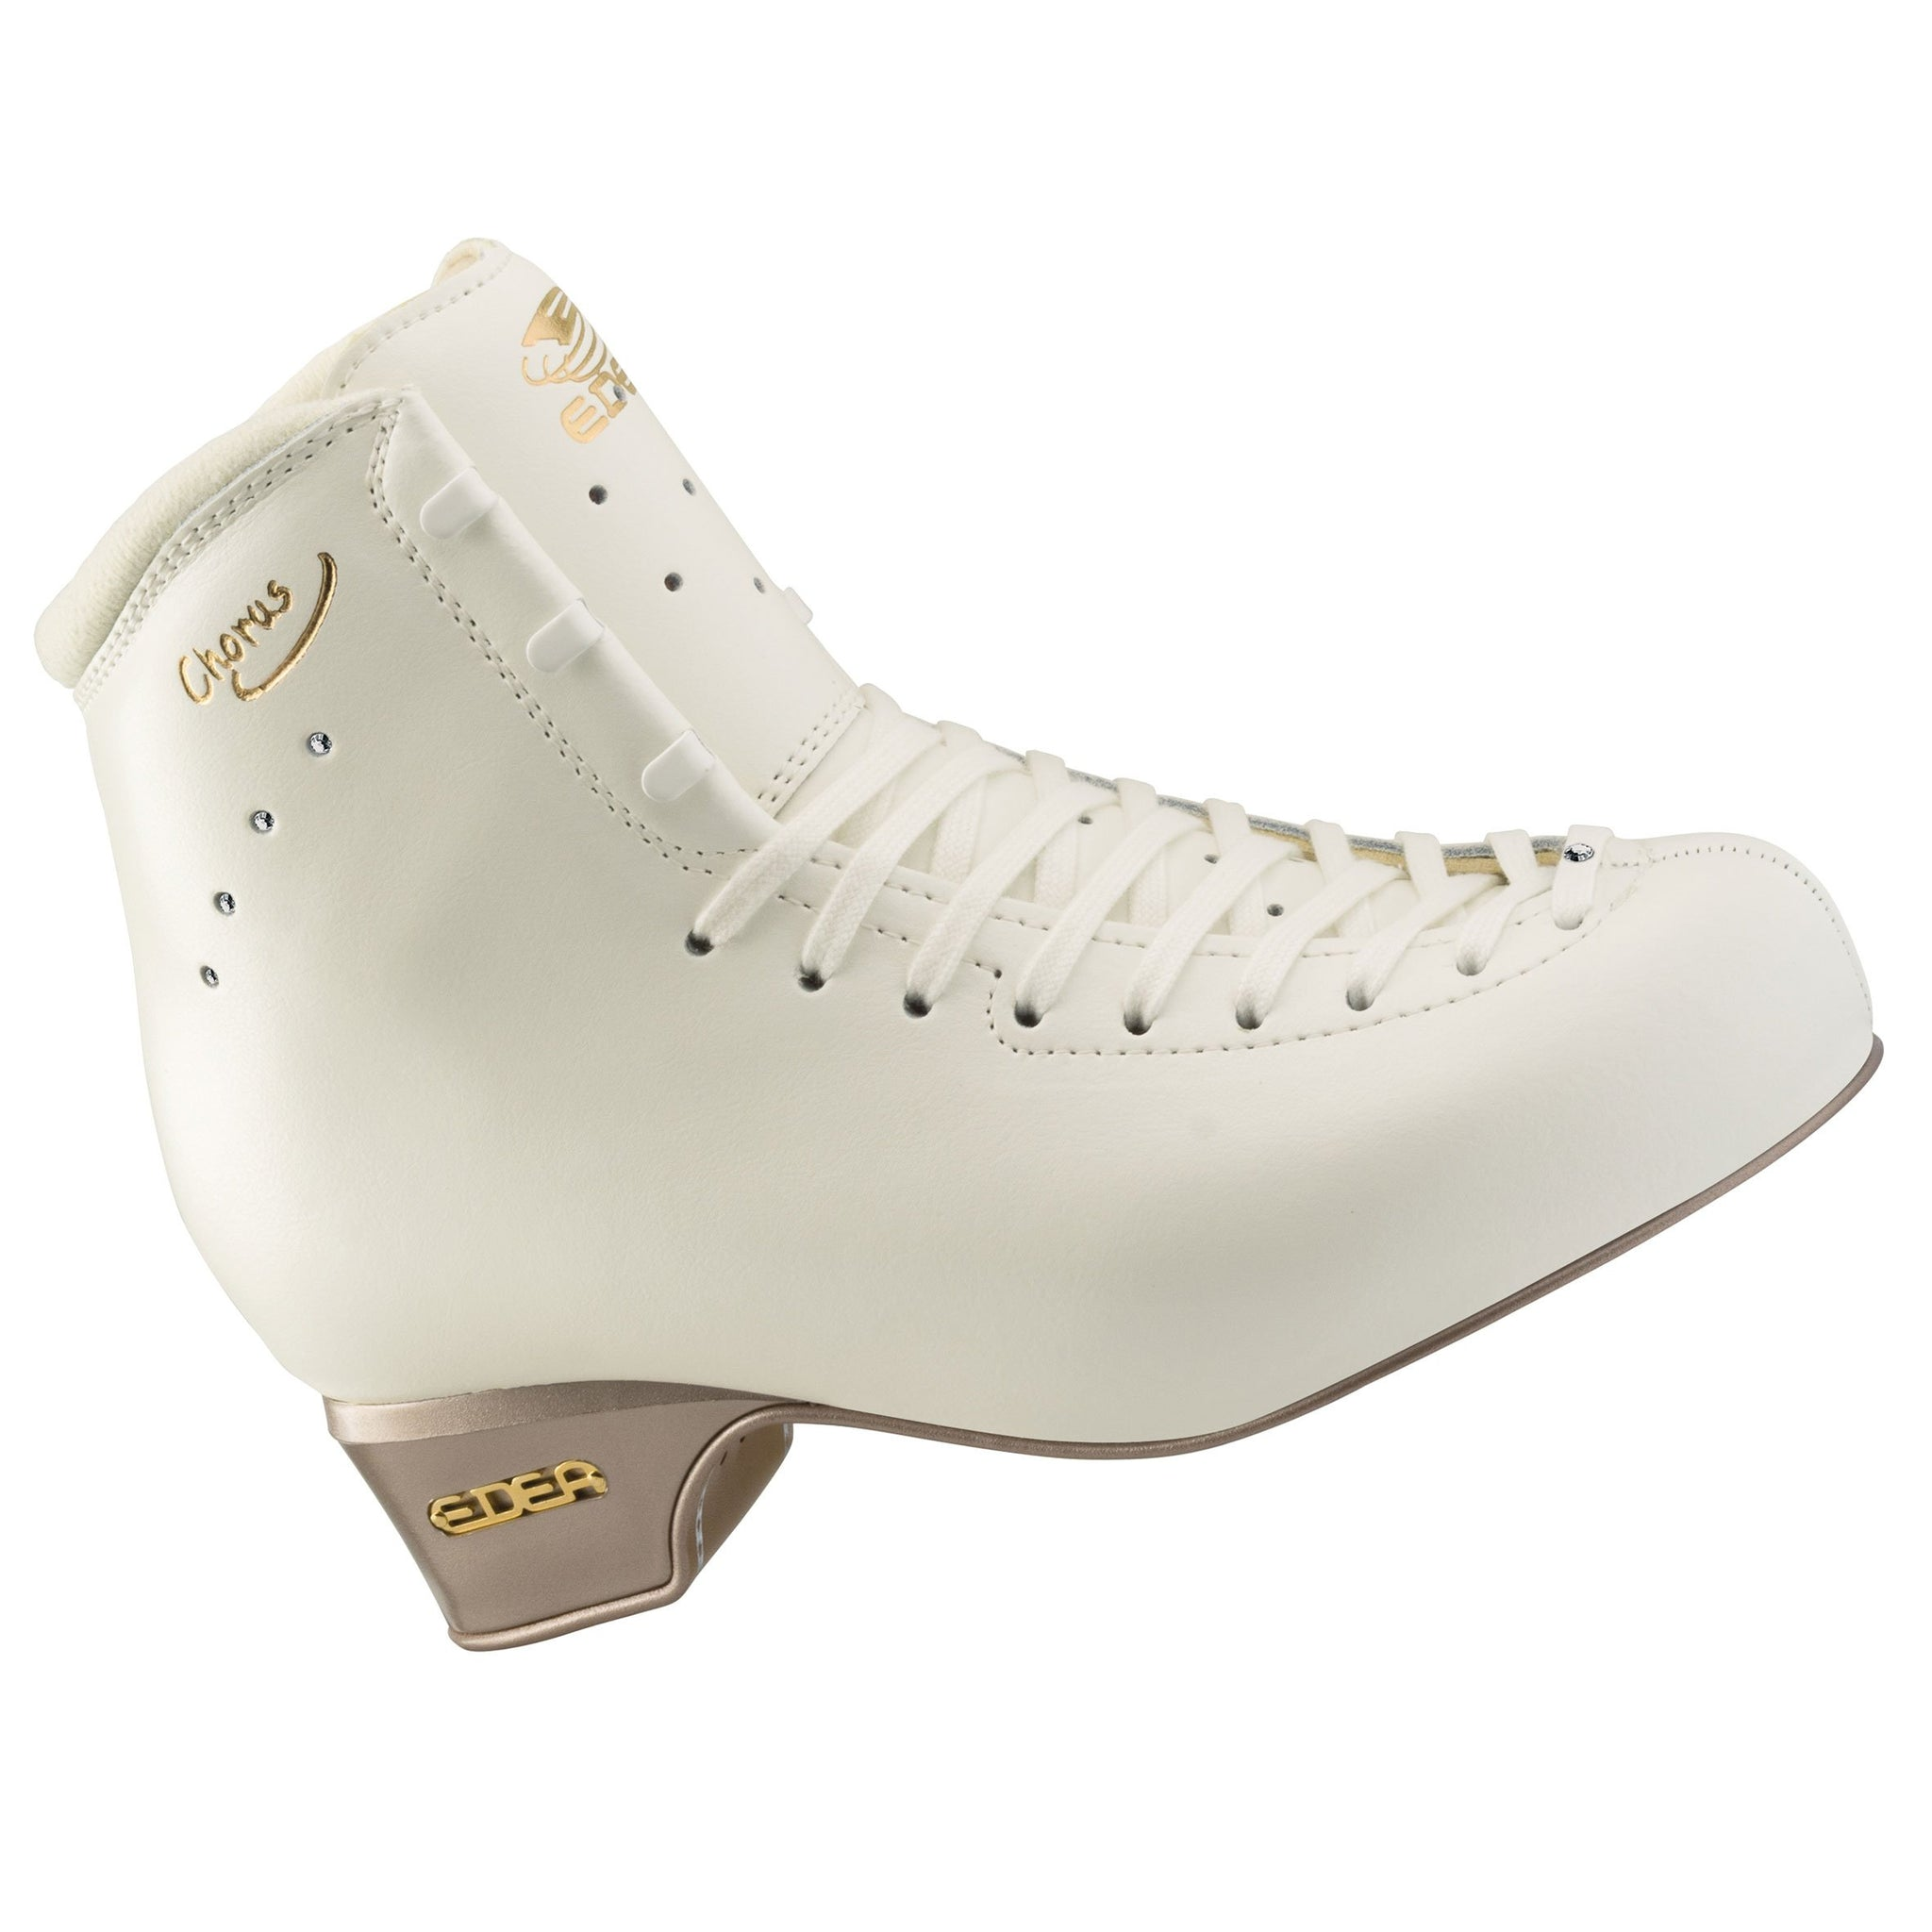 Edea Chorus Figure Skates Boots Only Double Jumps From Sizes 21 0 28 0